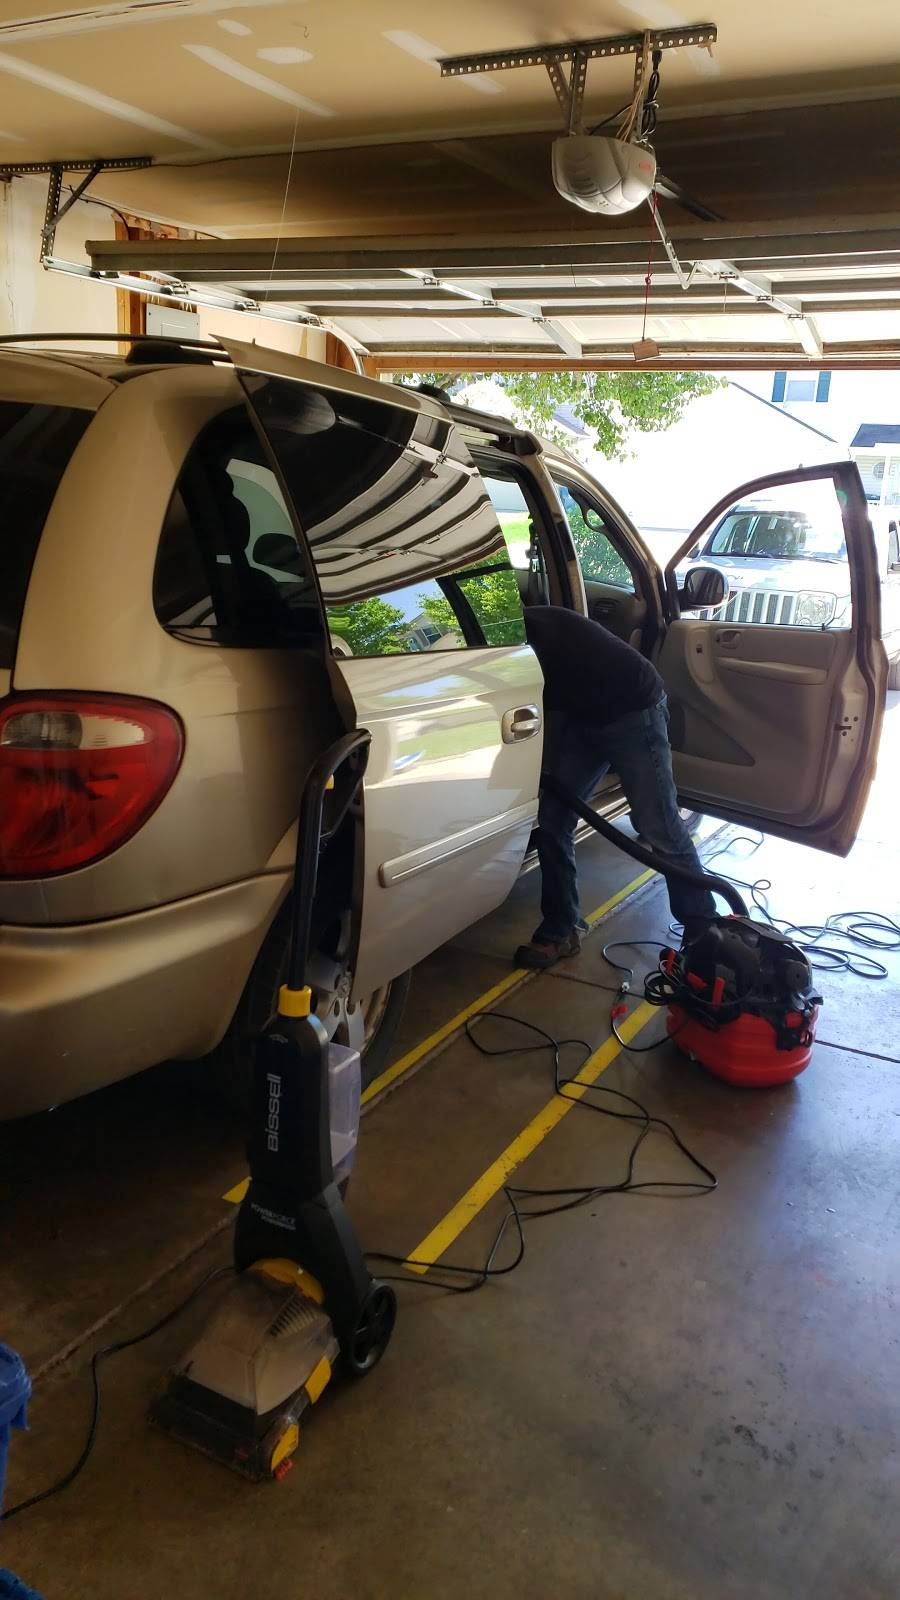 4G Auto Spa Mobile - car wash    Photo 2 of 7   Address: 10936 Bellflower Ct, Indianapolis, IN 46235, USA   Phone: (317) 515-0066